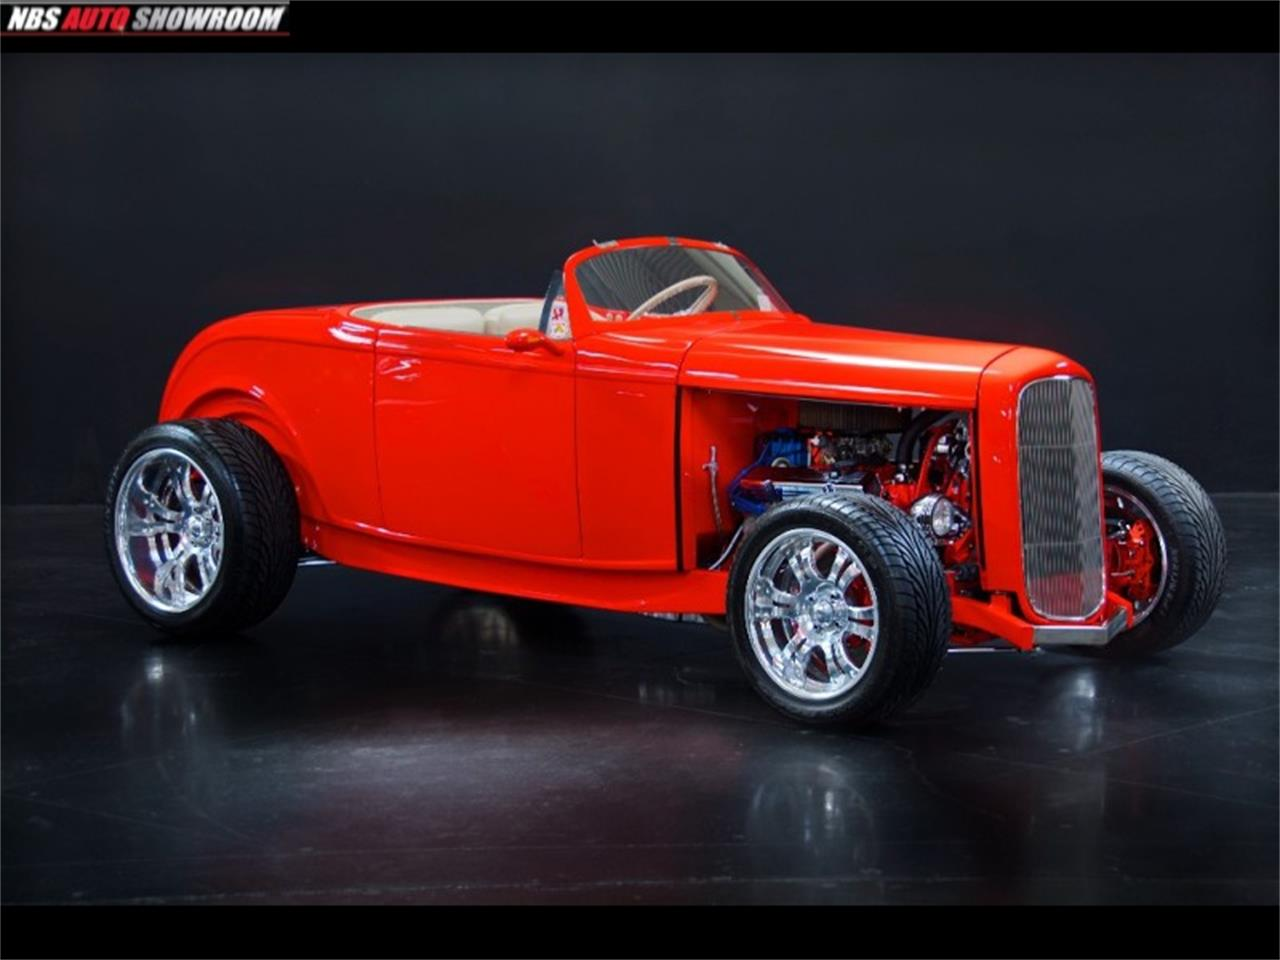 Large Picture of Classic 1932 Ford Roadster located in California - $37,546.00 Offered by NBS Auto Showroom - QY4R